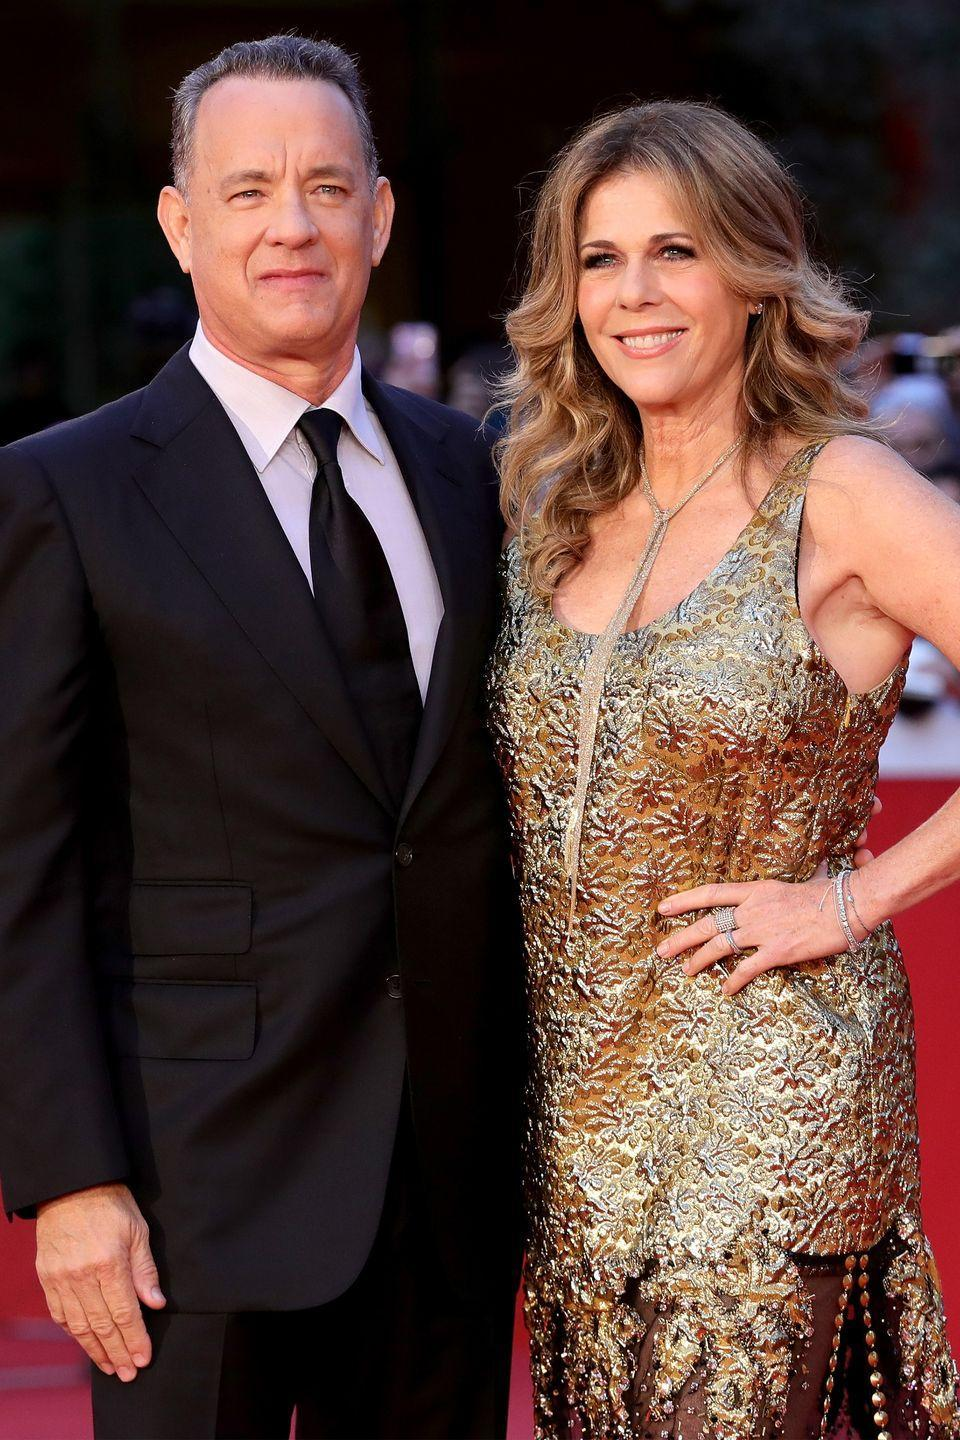 "<p>If Tom Hanks and Rita Wilson didn't fall in love, Hanks might not have won an Oscar for <em>Forest Gump</em>. ""I view my wife as my lover, and we have a bond that goes beyond words like wife or girlfriend or mother,"" Hanks told <a href=""http://www.oprah.com/omagazine/oprah-interviews-tom-hanks/all"" rel=""nofollow noopener"" target=""_blank"" data-ylk=""slk:Oprah Winfrey"" class=""link rapid-noclick-resp"">Oprah Winfrey </a>in 2001. ""Without my connection with Rita, I don't know how I would've been able to connect with what Forrest was going through.""</p><p>The couple has been married for <a href=""https://people.com/movies/tom-hanks-rita-wilson-love-story/"" rel=""nofollow noopener"" target=""_blank"" data-ylk=""slk:over 30 years"" class=""link rapid-noclick-resp"">over 30 years</a>, and certainly embody #couplegoals with their low-key relationship.</p>"